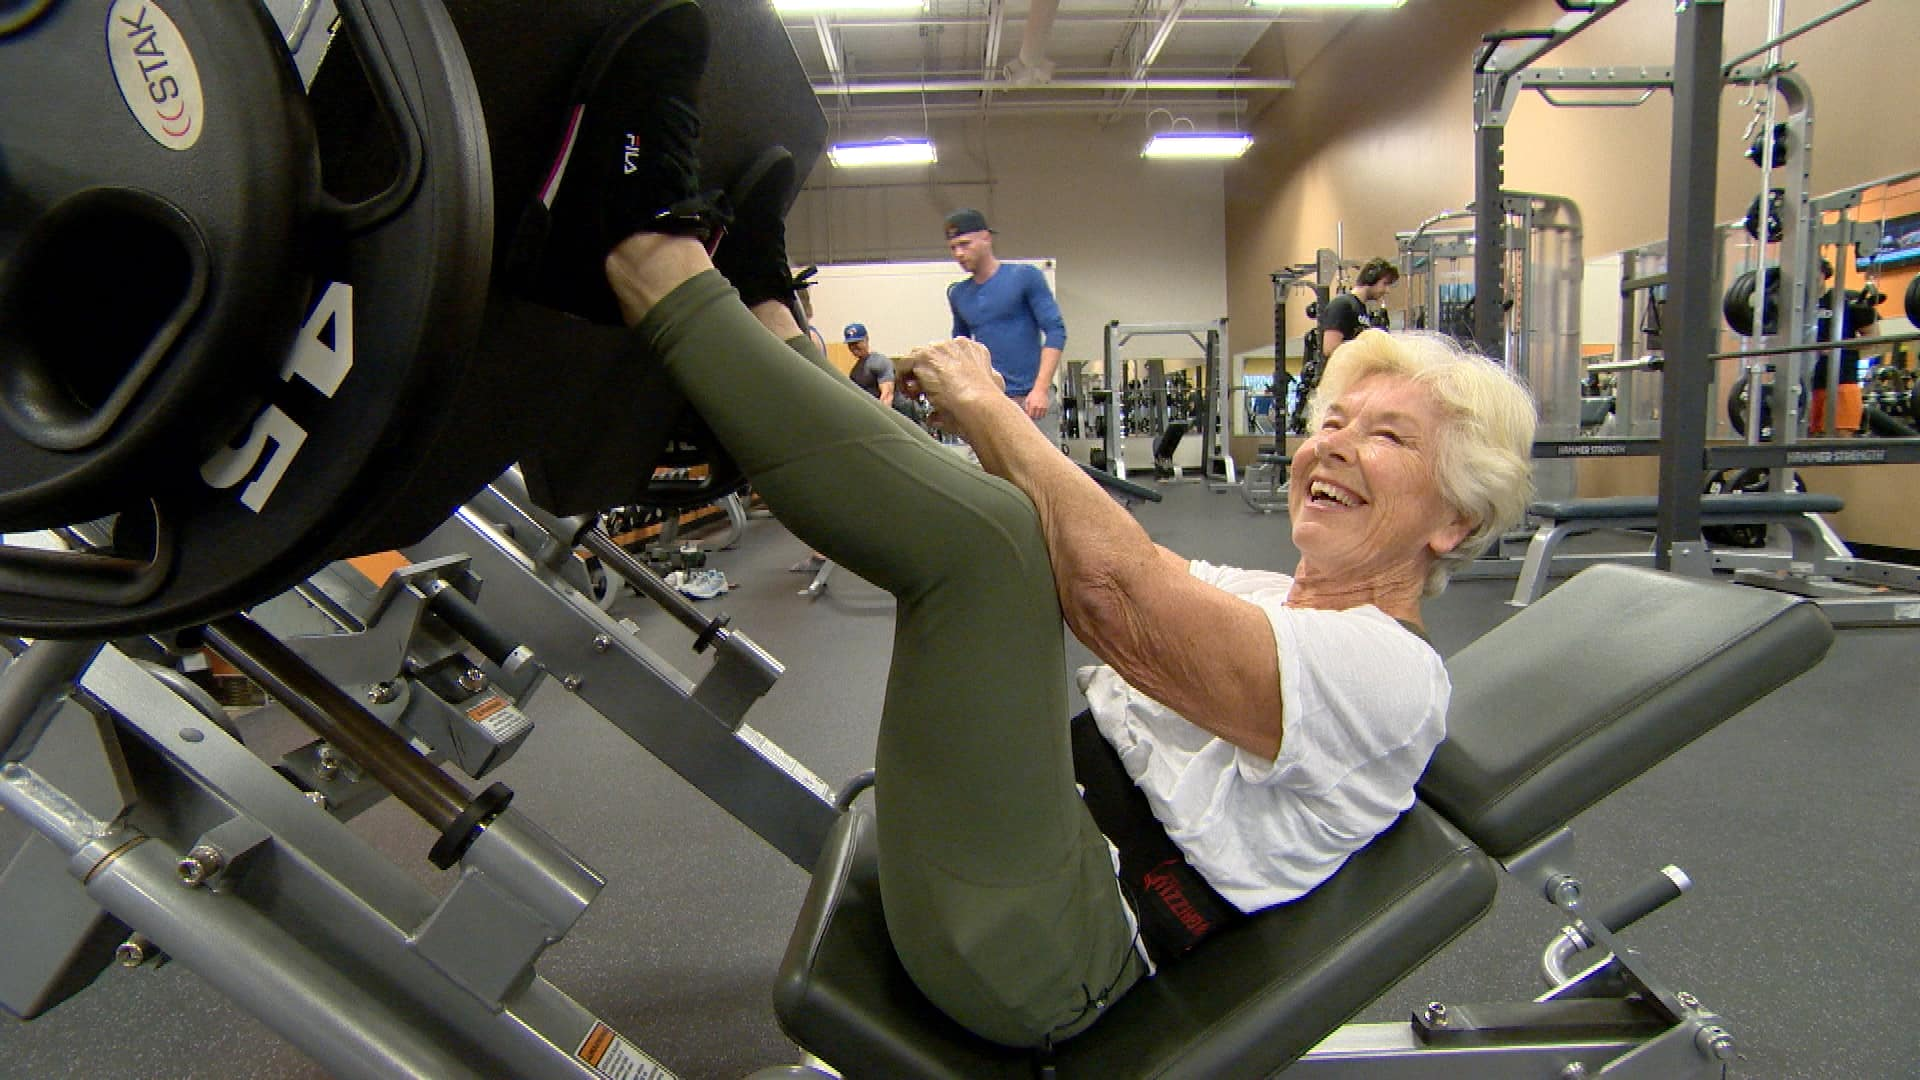 I Was Slowly Dying Now I M Going To Live Fitness Guru 73 Has 119 000 Instagram Followers Cbc News